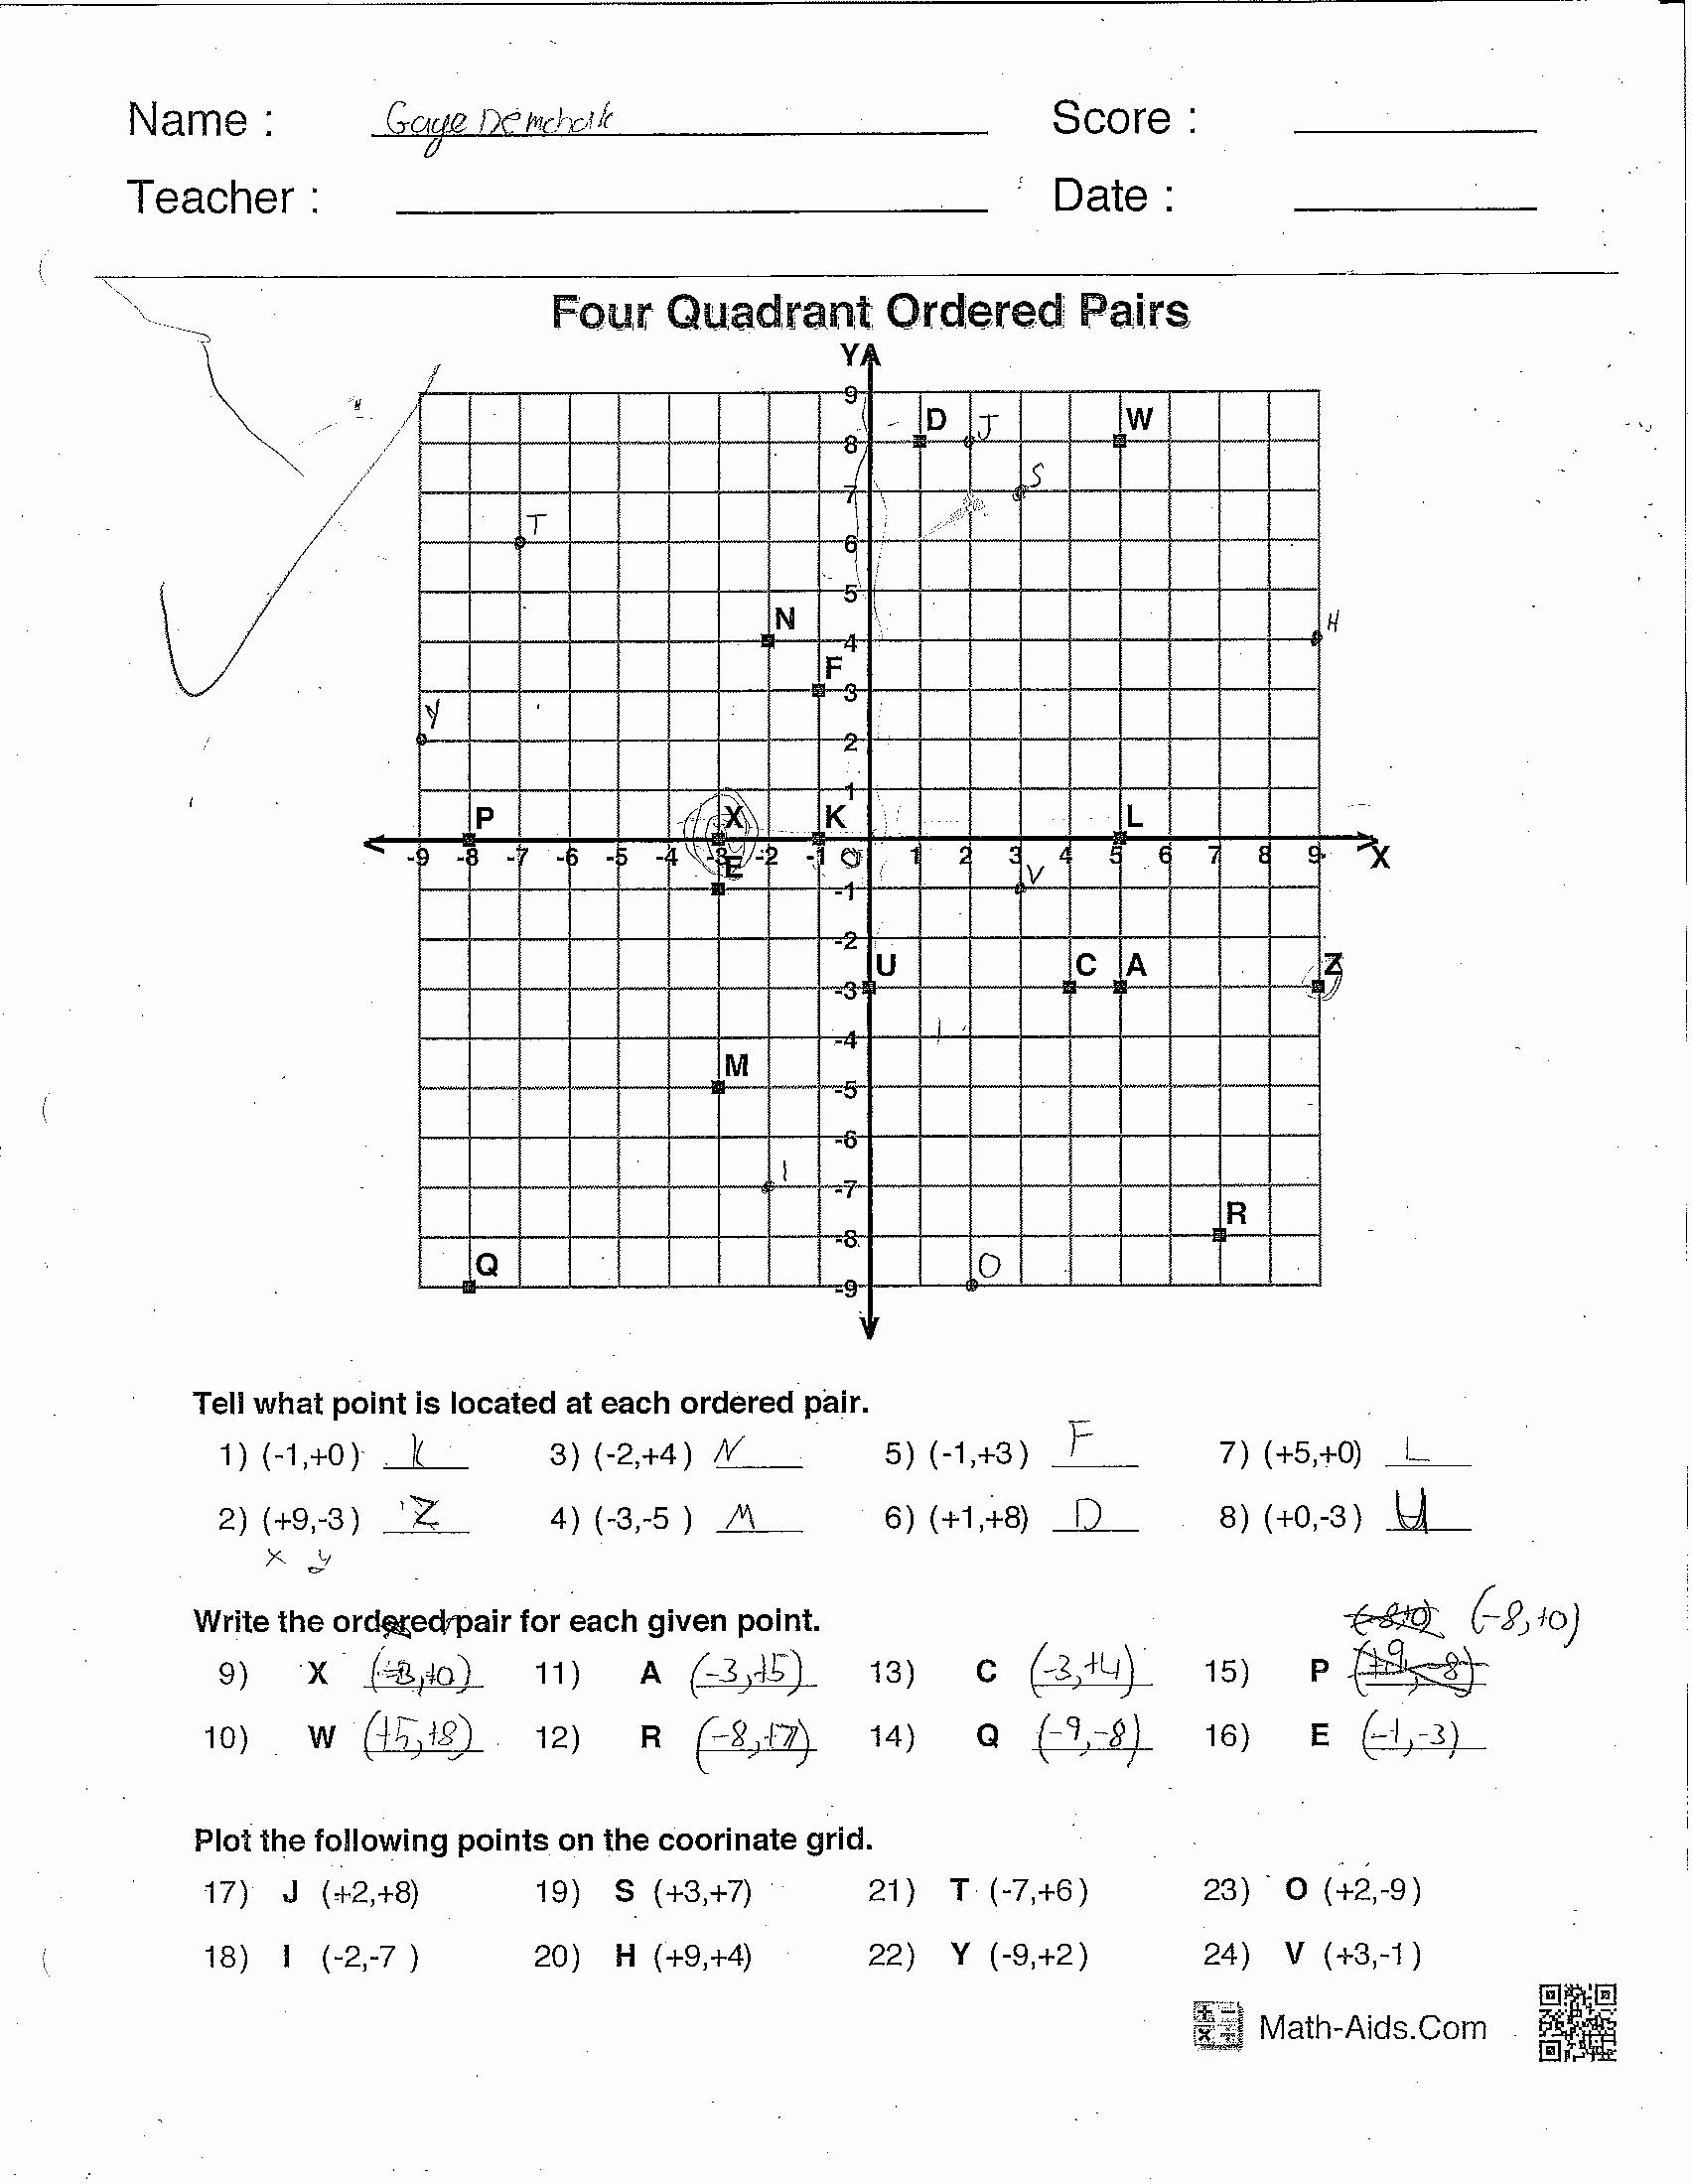 Ordered Pairs Worksheet 5th Grade Printable 5th Grade Math Worksheets ordered Pairs